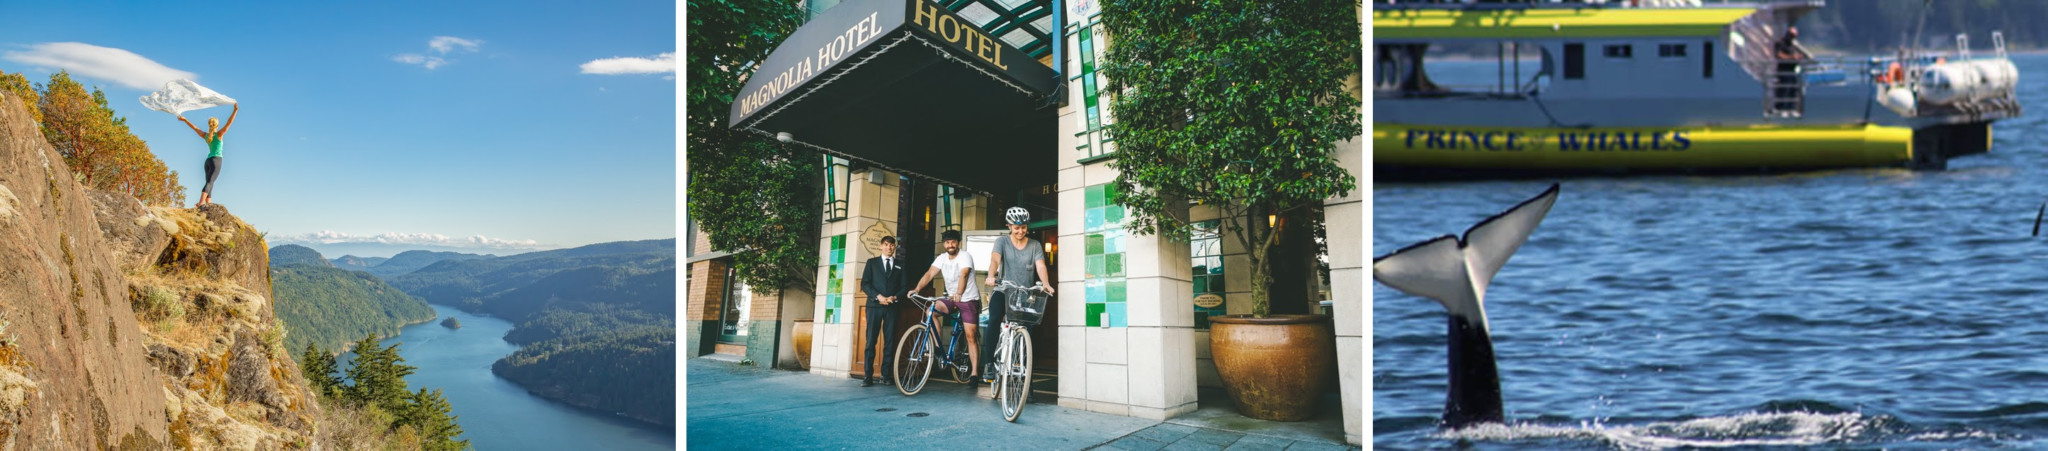 Magnolia Hotel & Spa's Curated Journeys showcase the best of spring and summer in Victoria